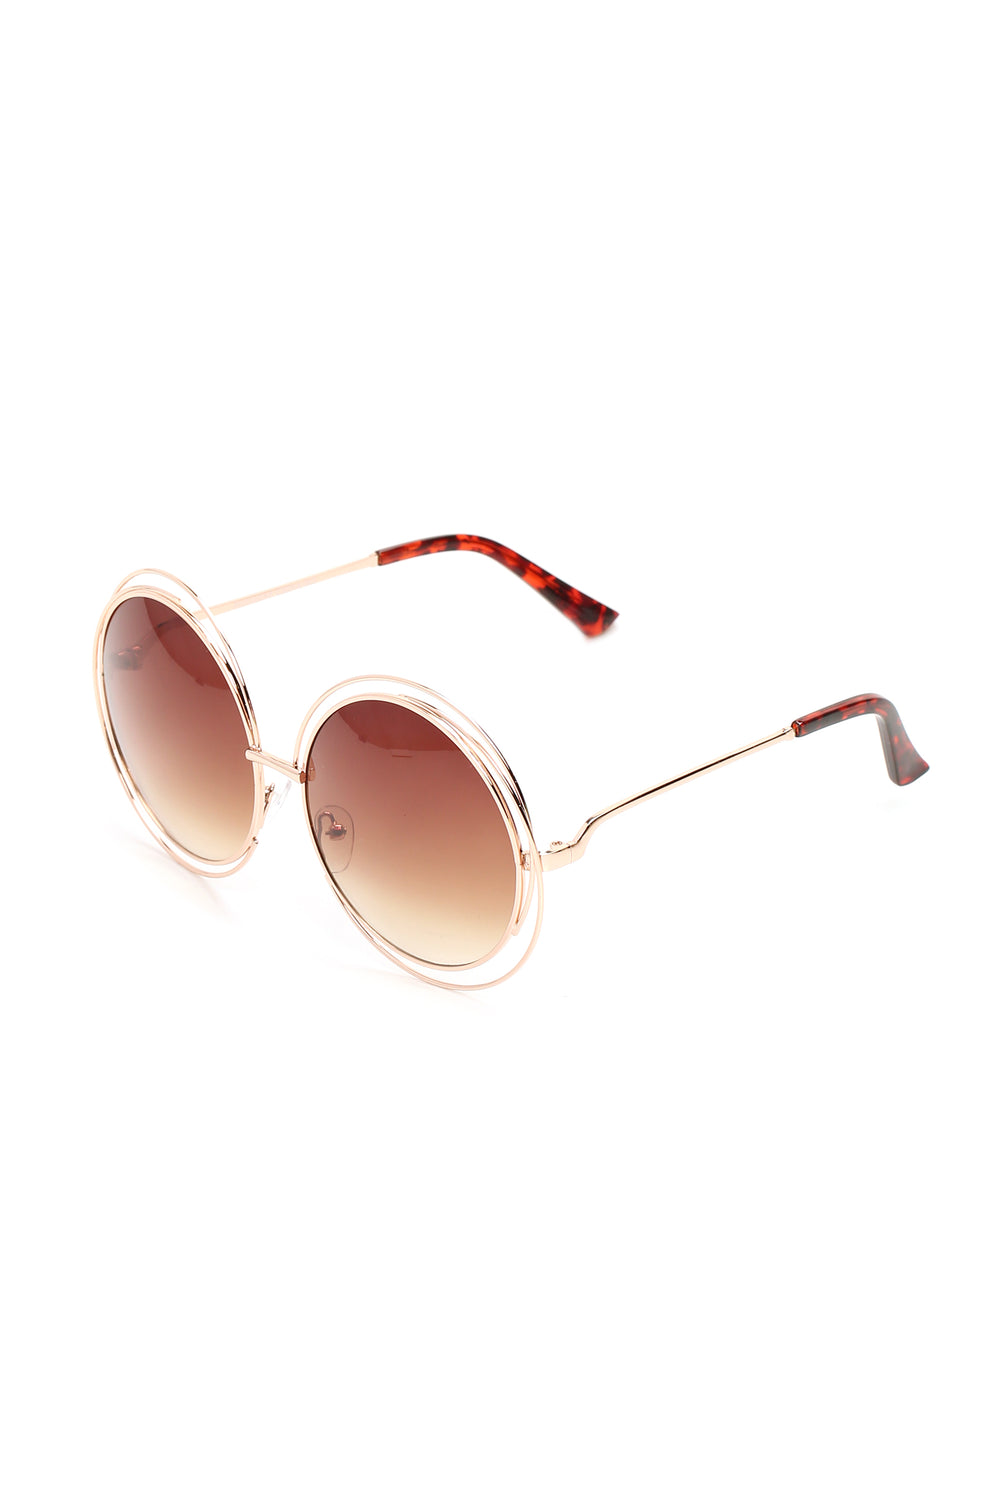 Fall In Deep Sunglasses - Gold